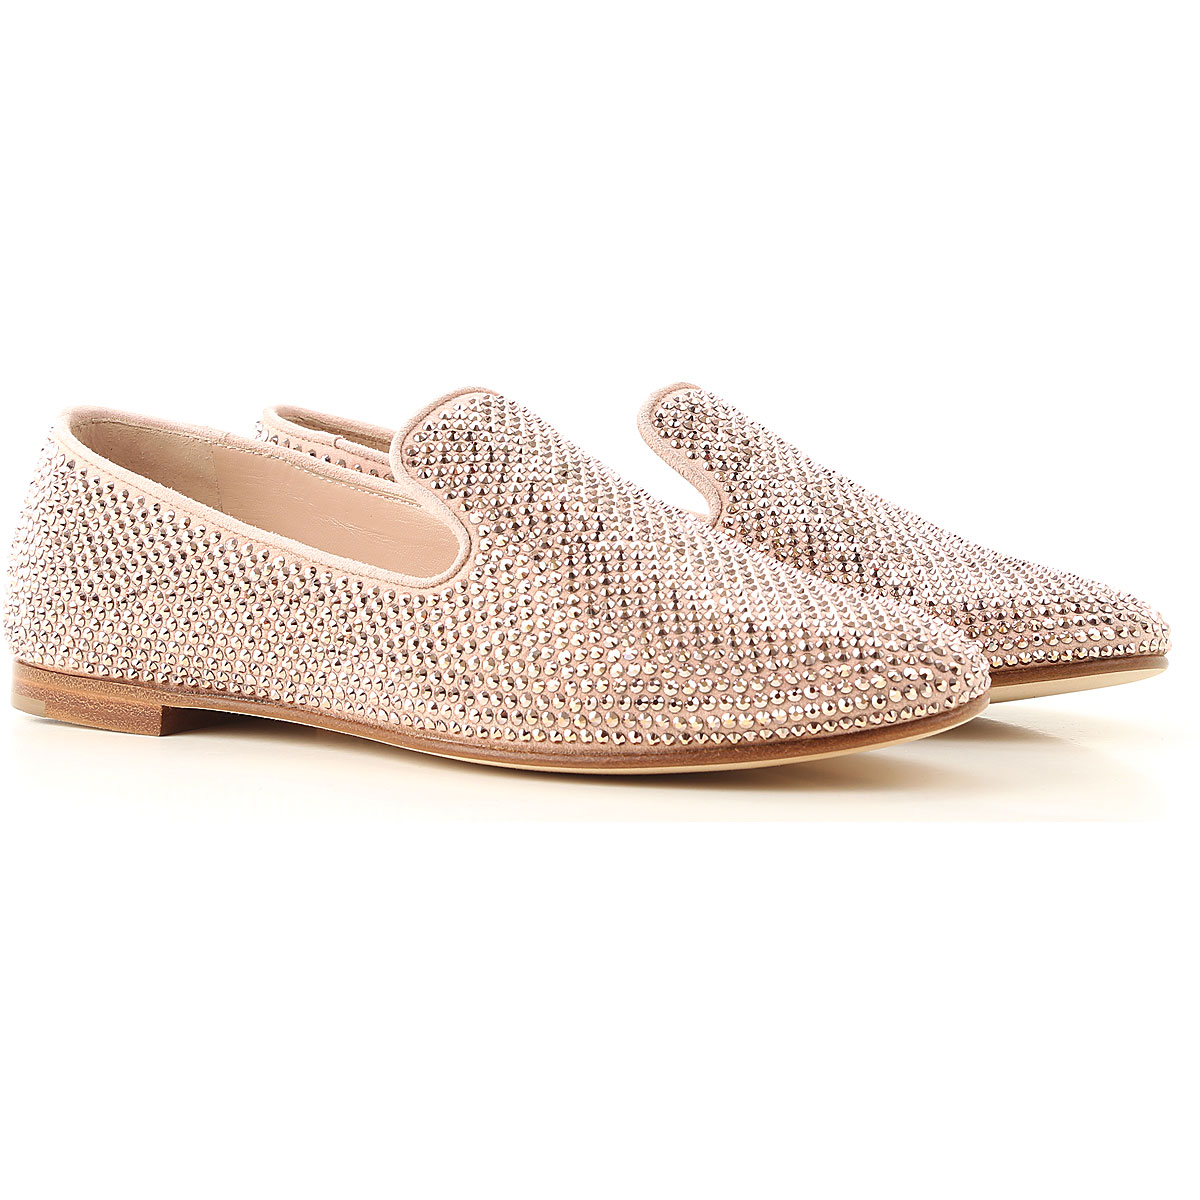 Giuseppe Zanotti Design Loafers for Women On Sale, Pink, Suede leather, 2019, 10 6 8